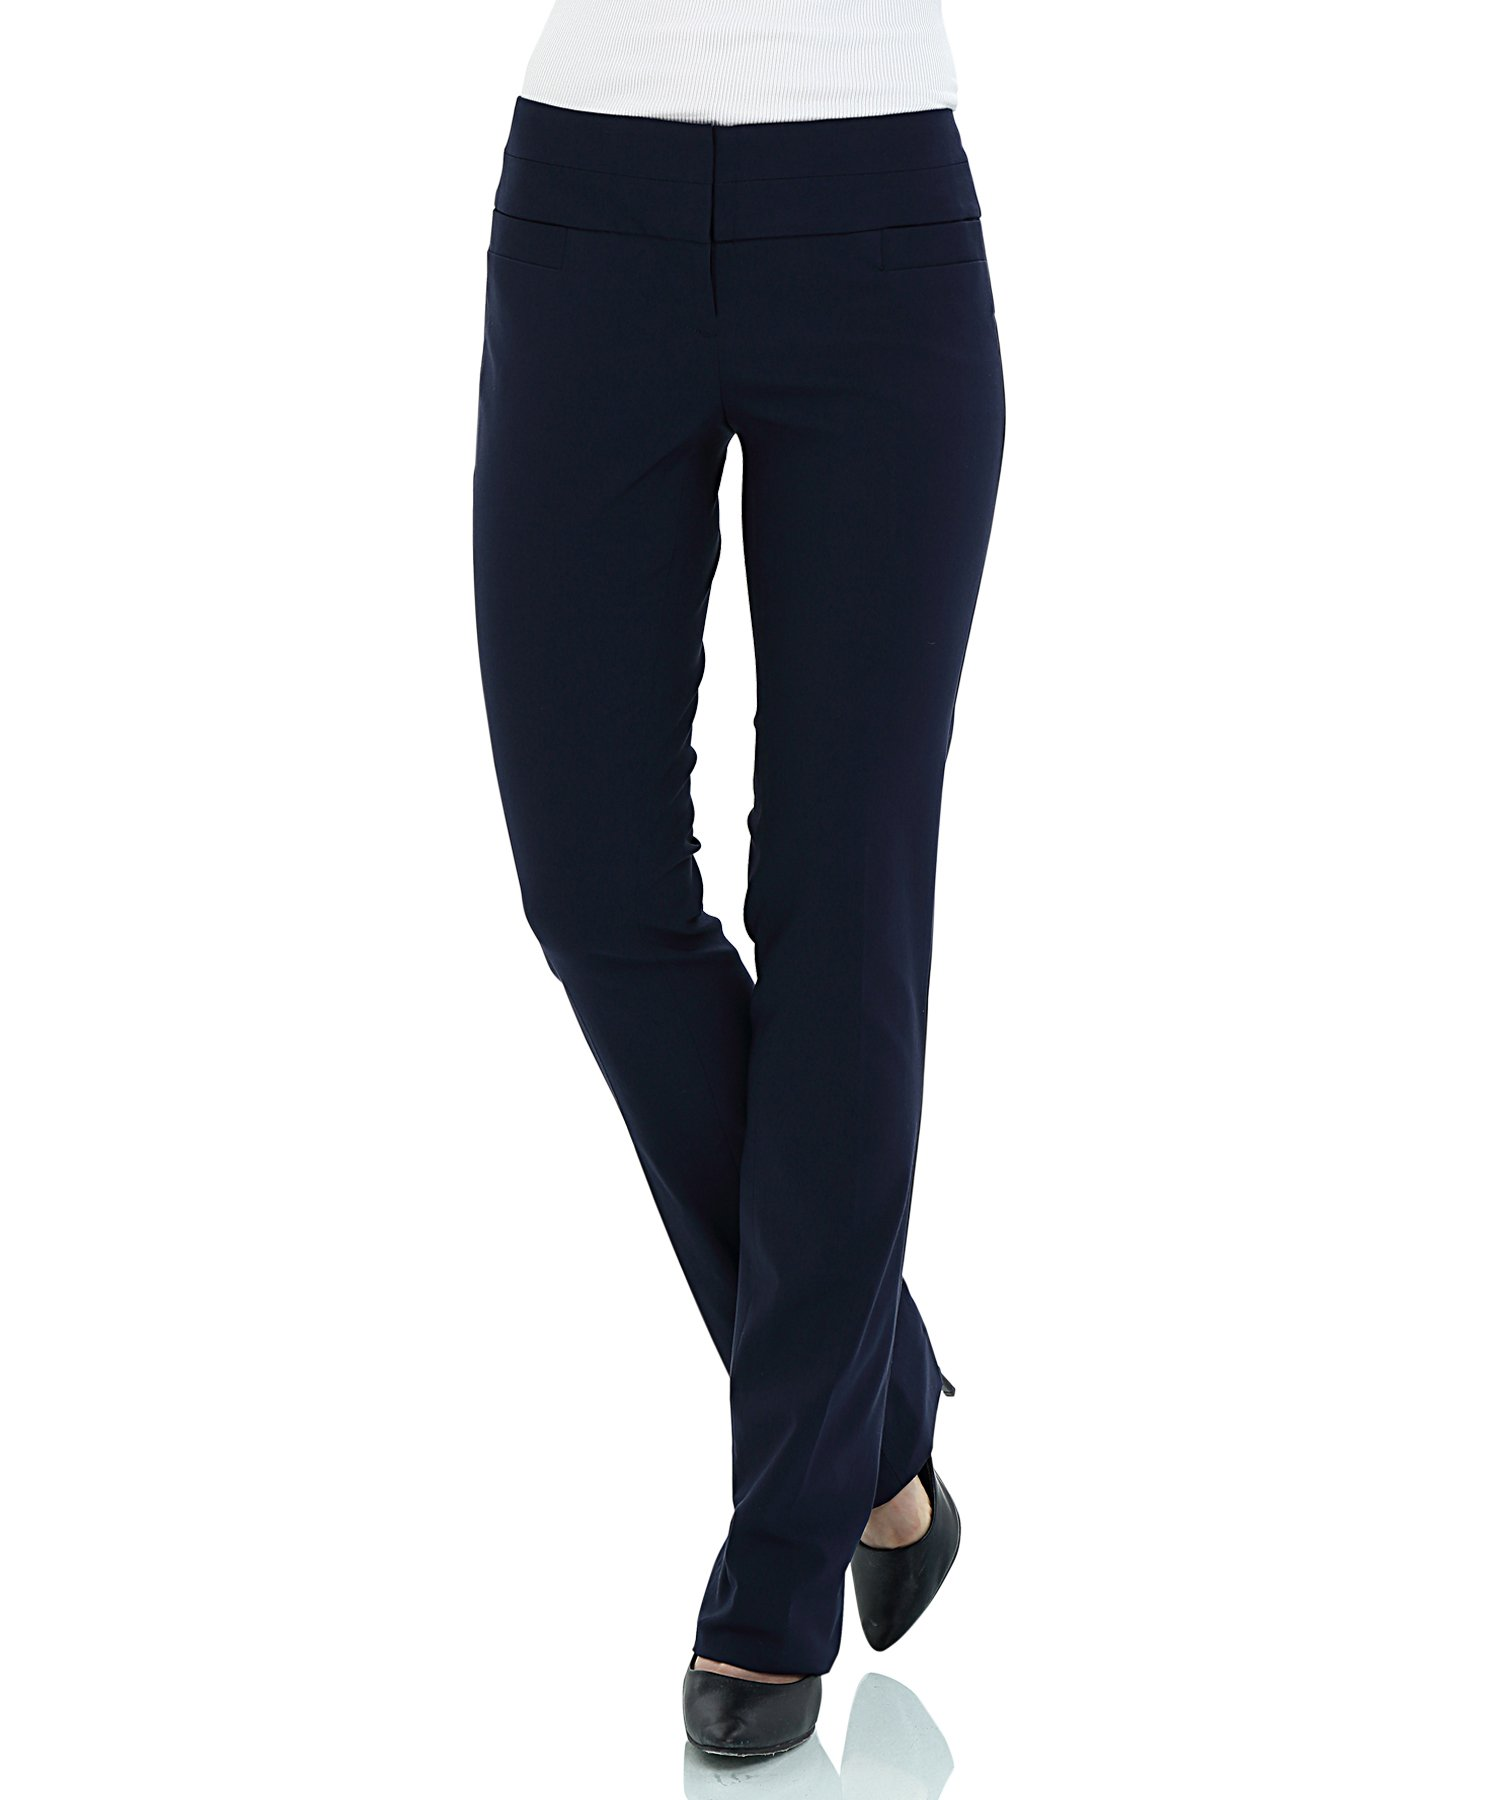 SATINATO Unique Styles Work Pants Stretchy Durable Trousers for Women 2/Navy